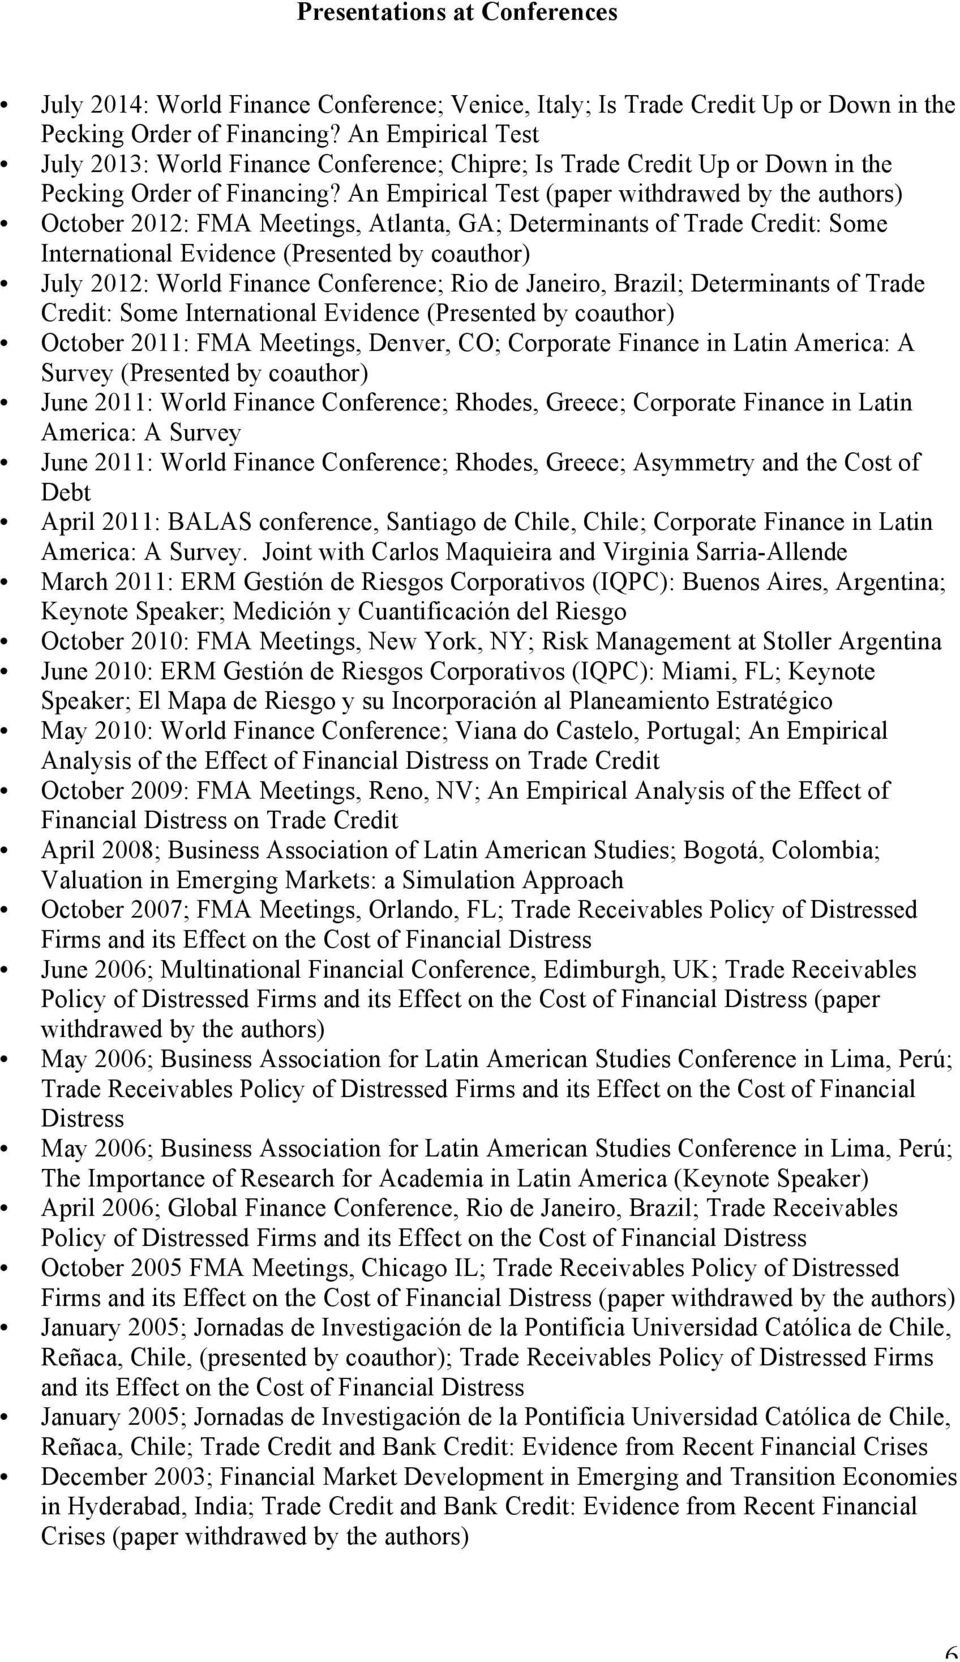 An Empirical Test (paper withdrawed by the authors) October 2012: FMA Meetings, Atlanta, GA; Determinants of Trade Credit: Some International Evidence (Presented by coauthor) July 2012: World Finance